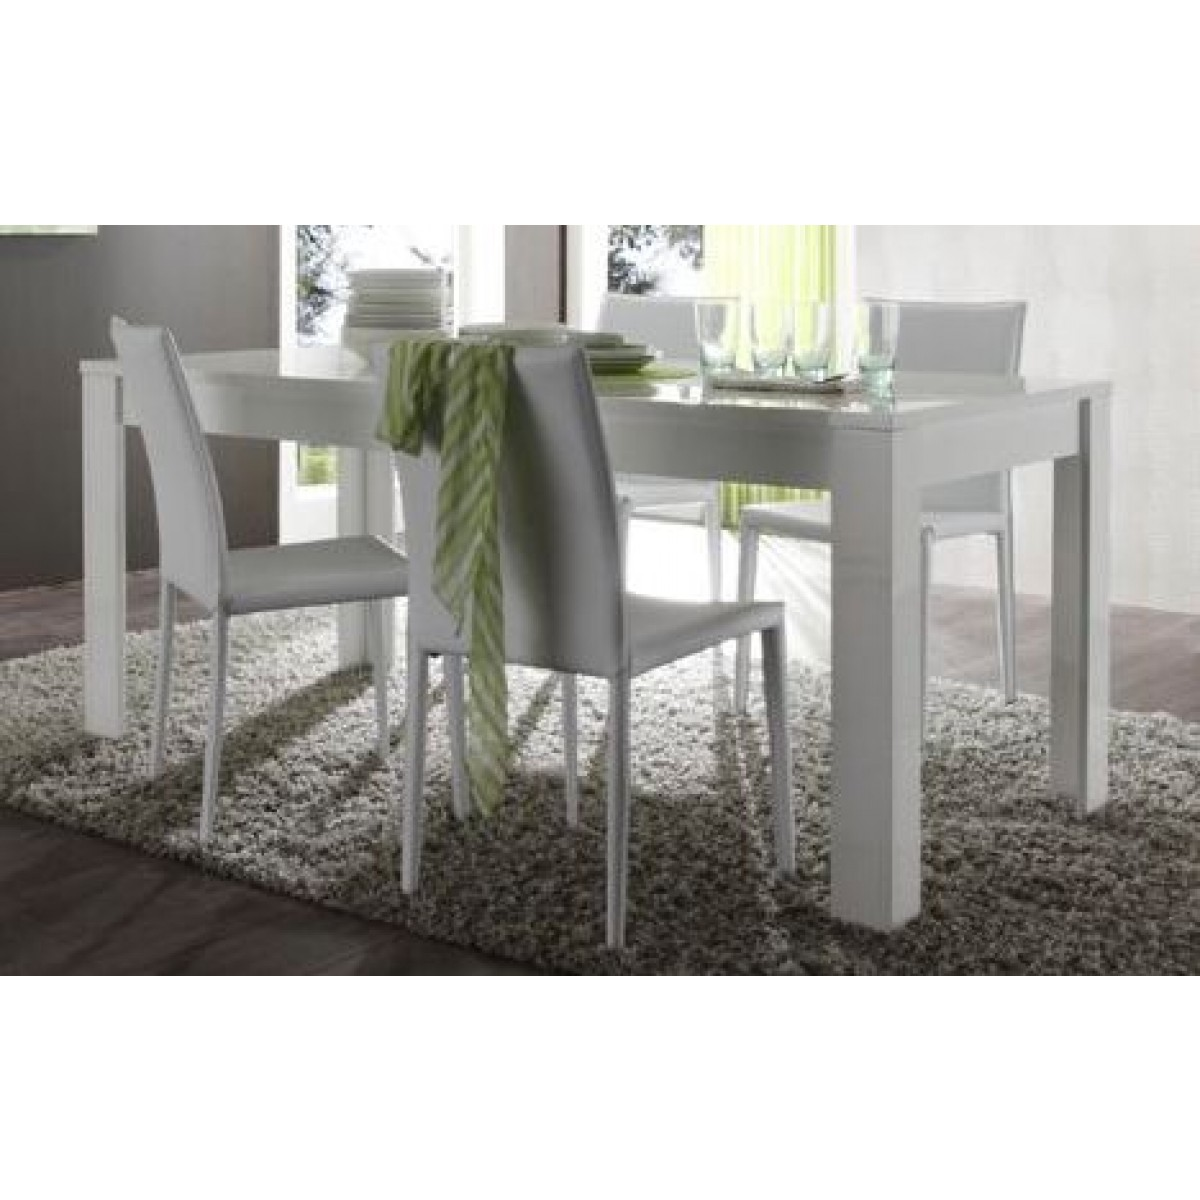 table laquee blanche rectangulaire 180 cm mooviin. Black Bedroom Furniture Sets. Home Design Ideas